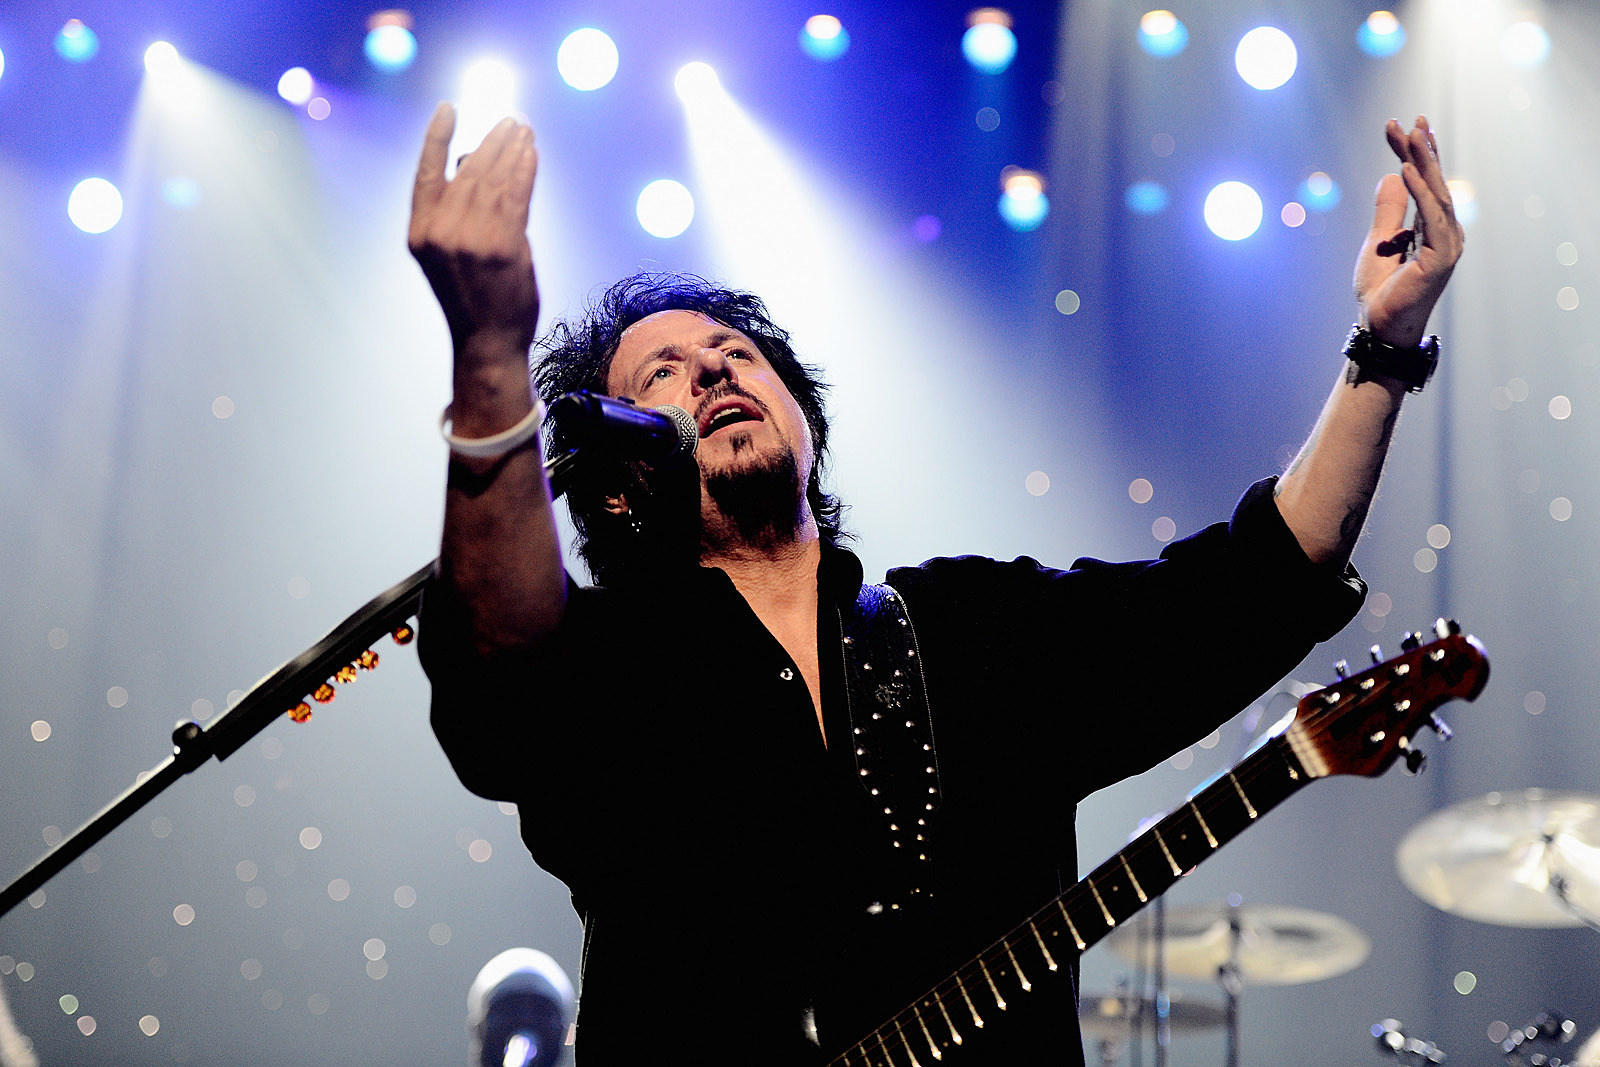 Steve Lukather Amazed at Club's Plan to Play Toto's 'Africa' All Night